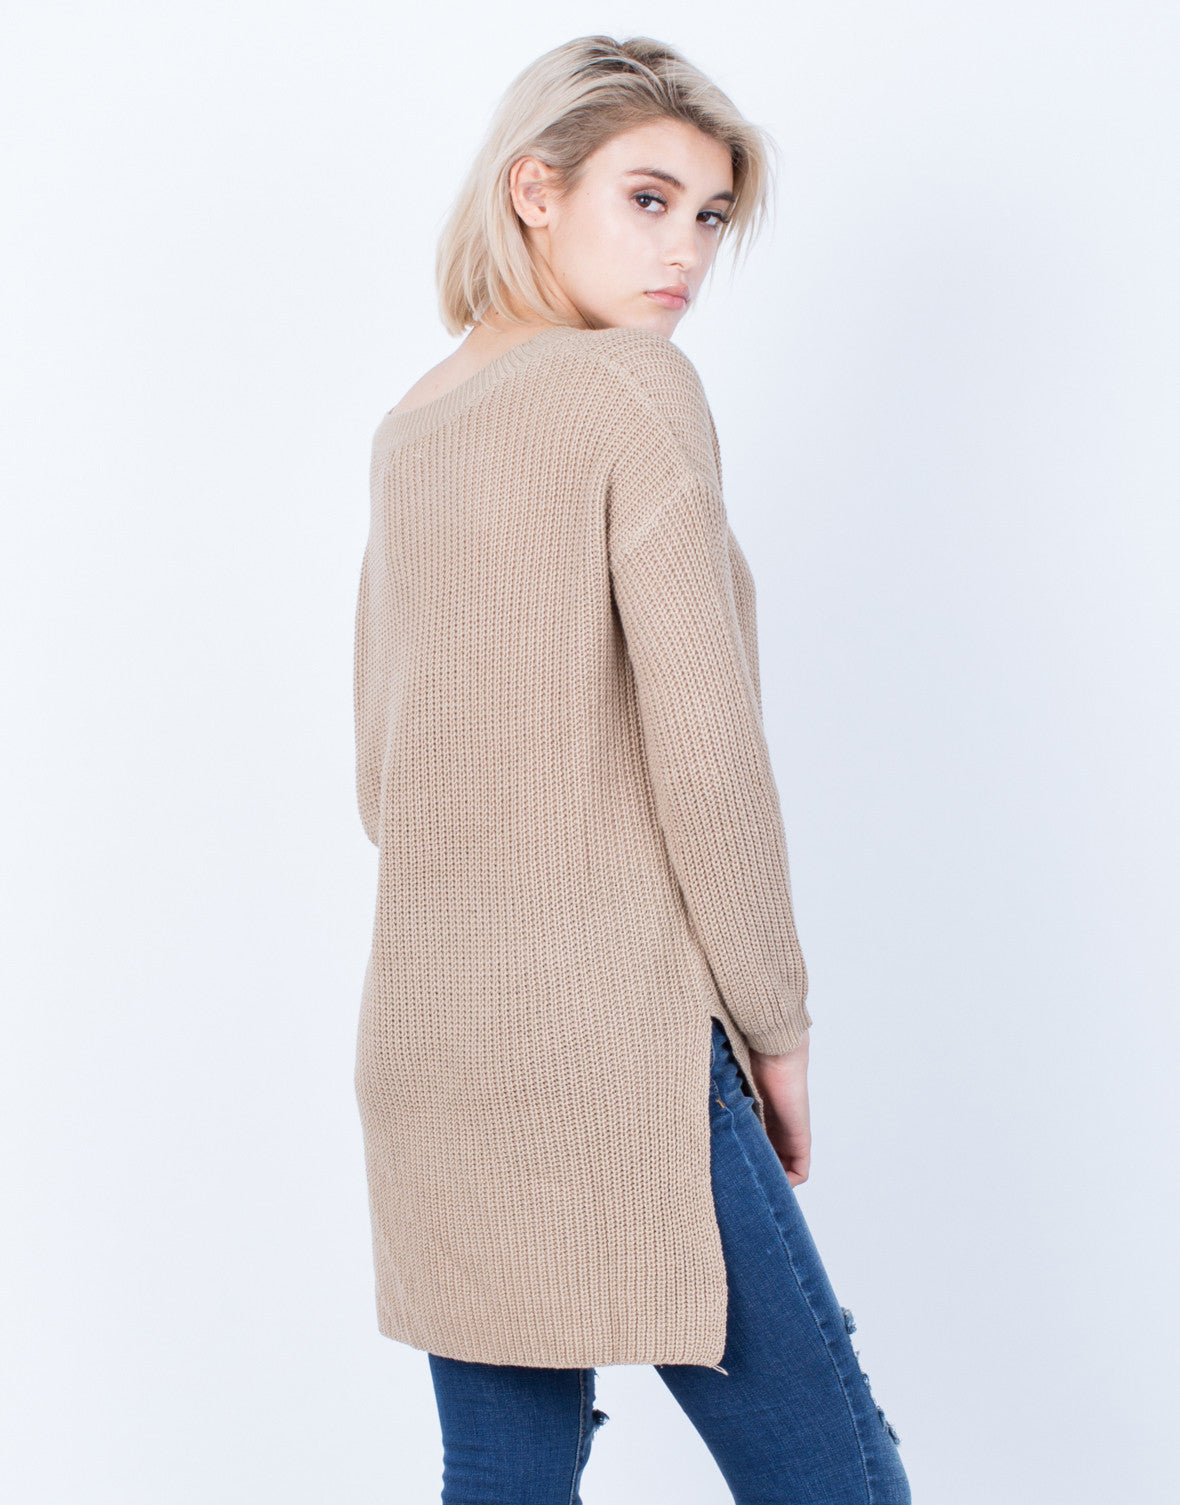 Back View of Simple Chunky Knit Sweater Top